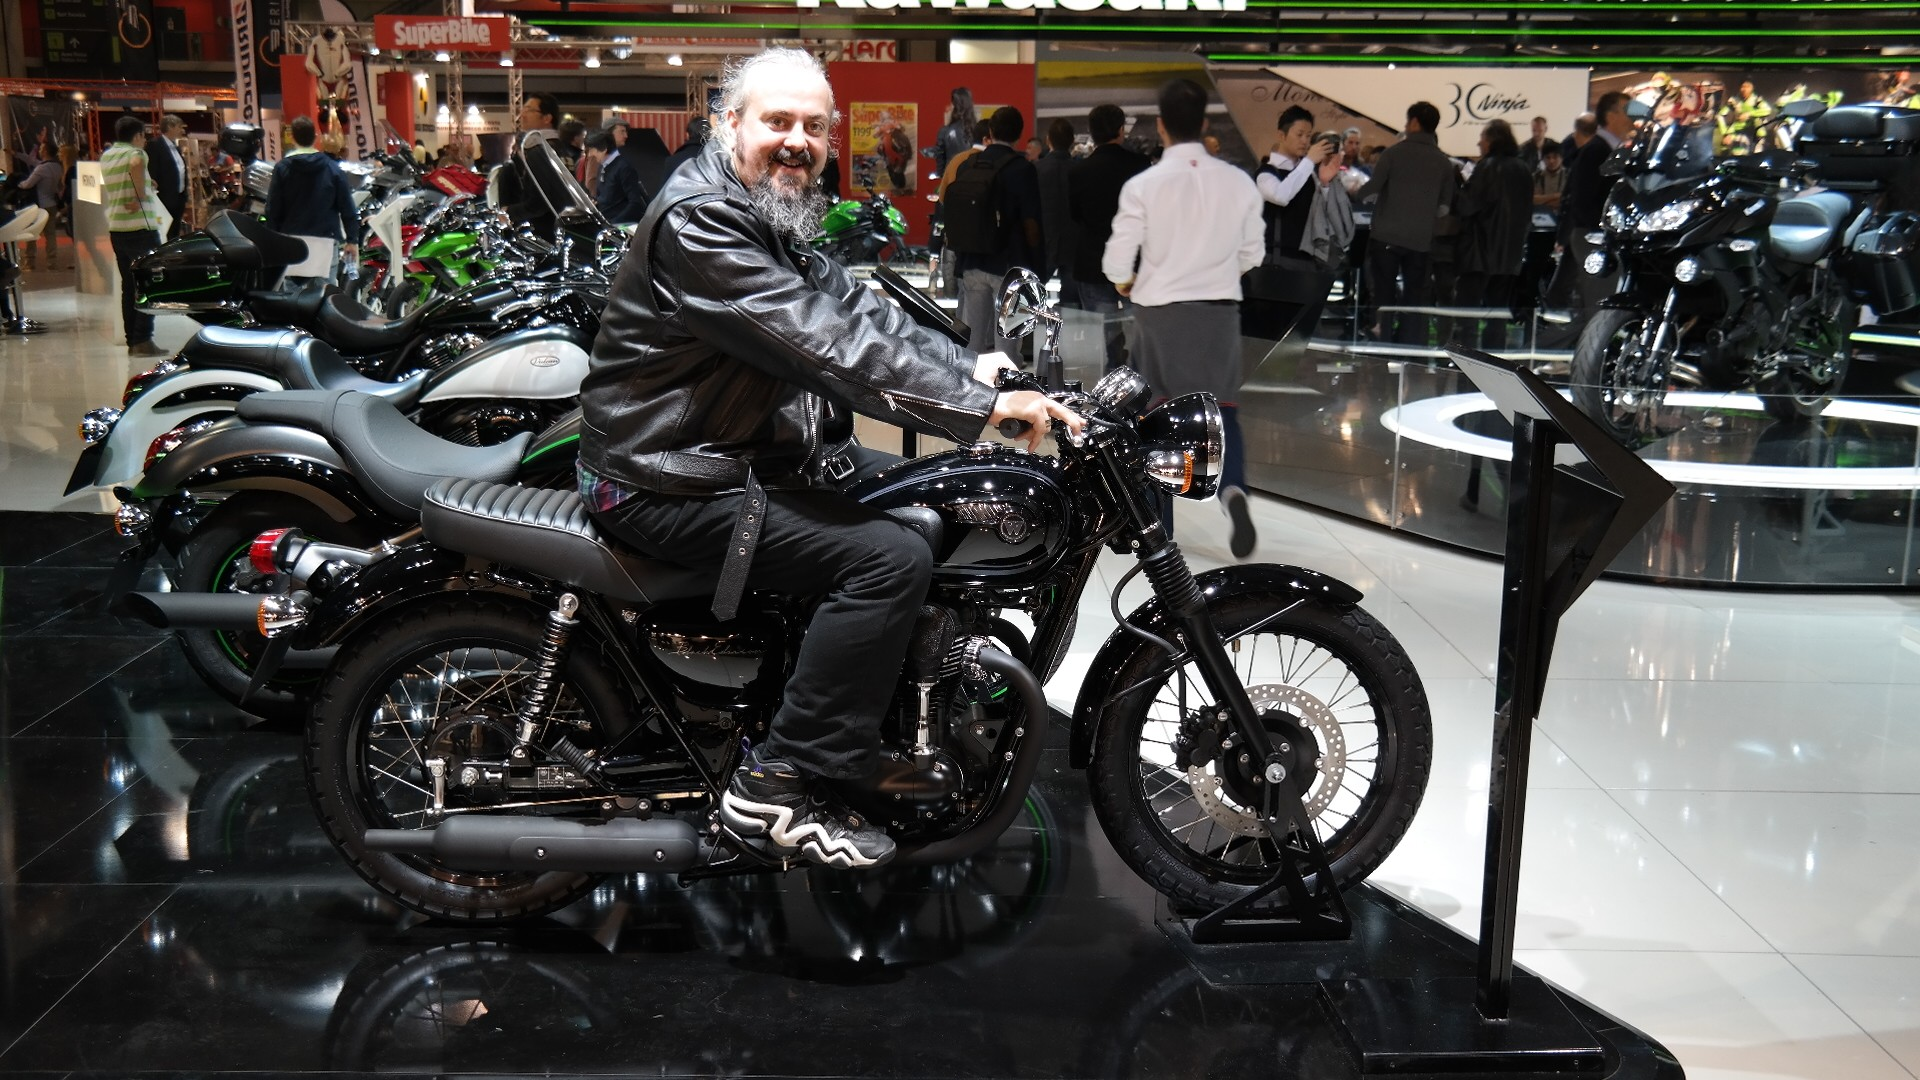 Our Editor Florin Tibu On The 2015 Kawasaki W800 Black Edition